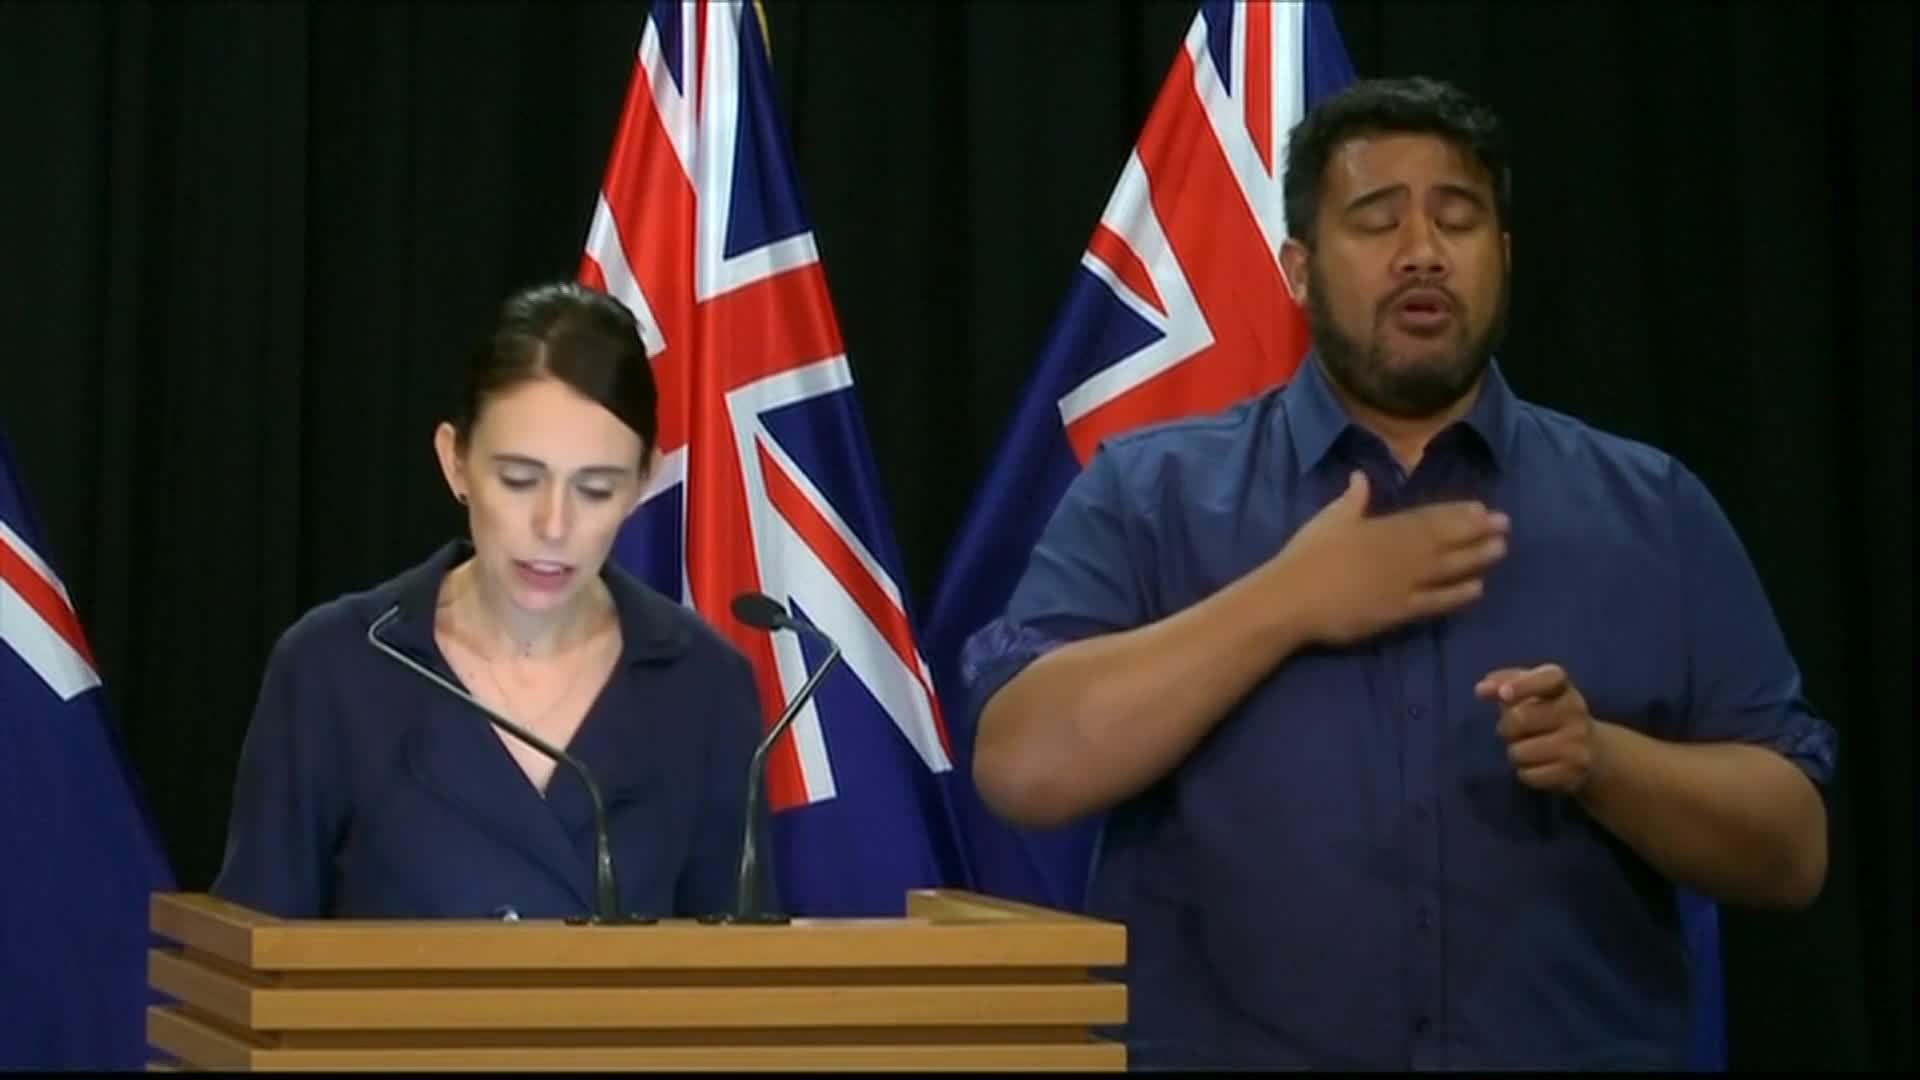 Mosque Shooting Suspect Will Face Justice In New Zealand, Prime Minister Says